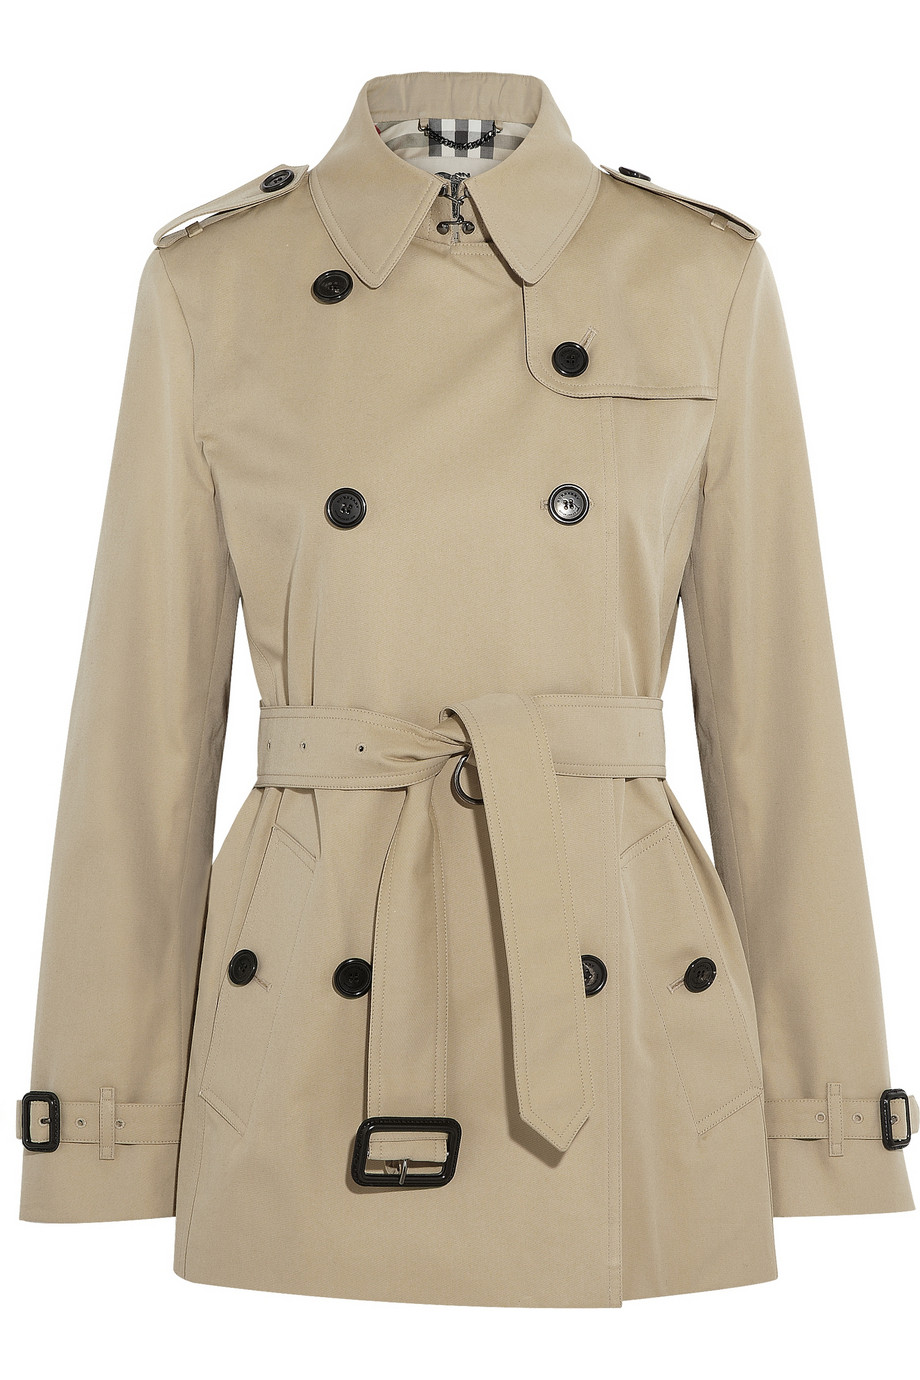 The ladies trench coat—truly, this is a wear it everywhere look that no lady of style should have to live without! The trench is a coat style worn equally well by men and women, yet it is a design that has special charm as a women's jacket.